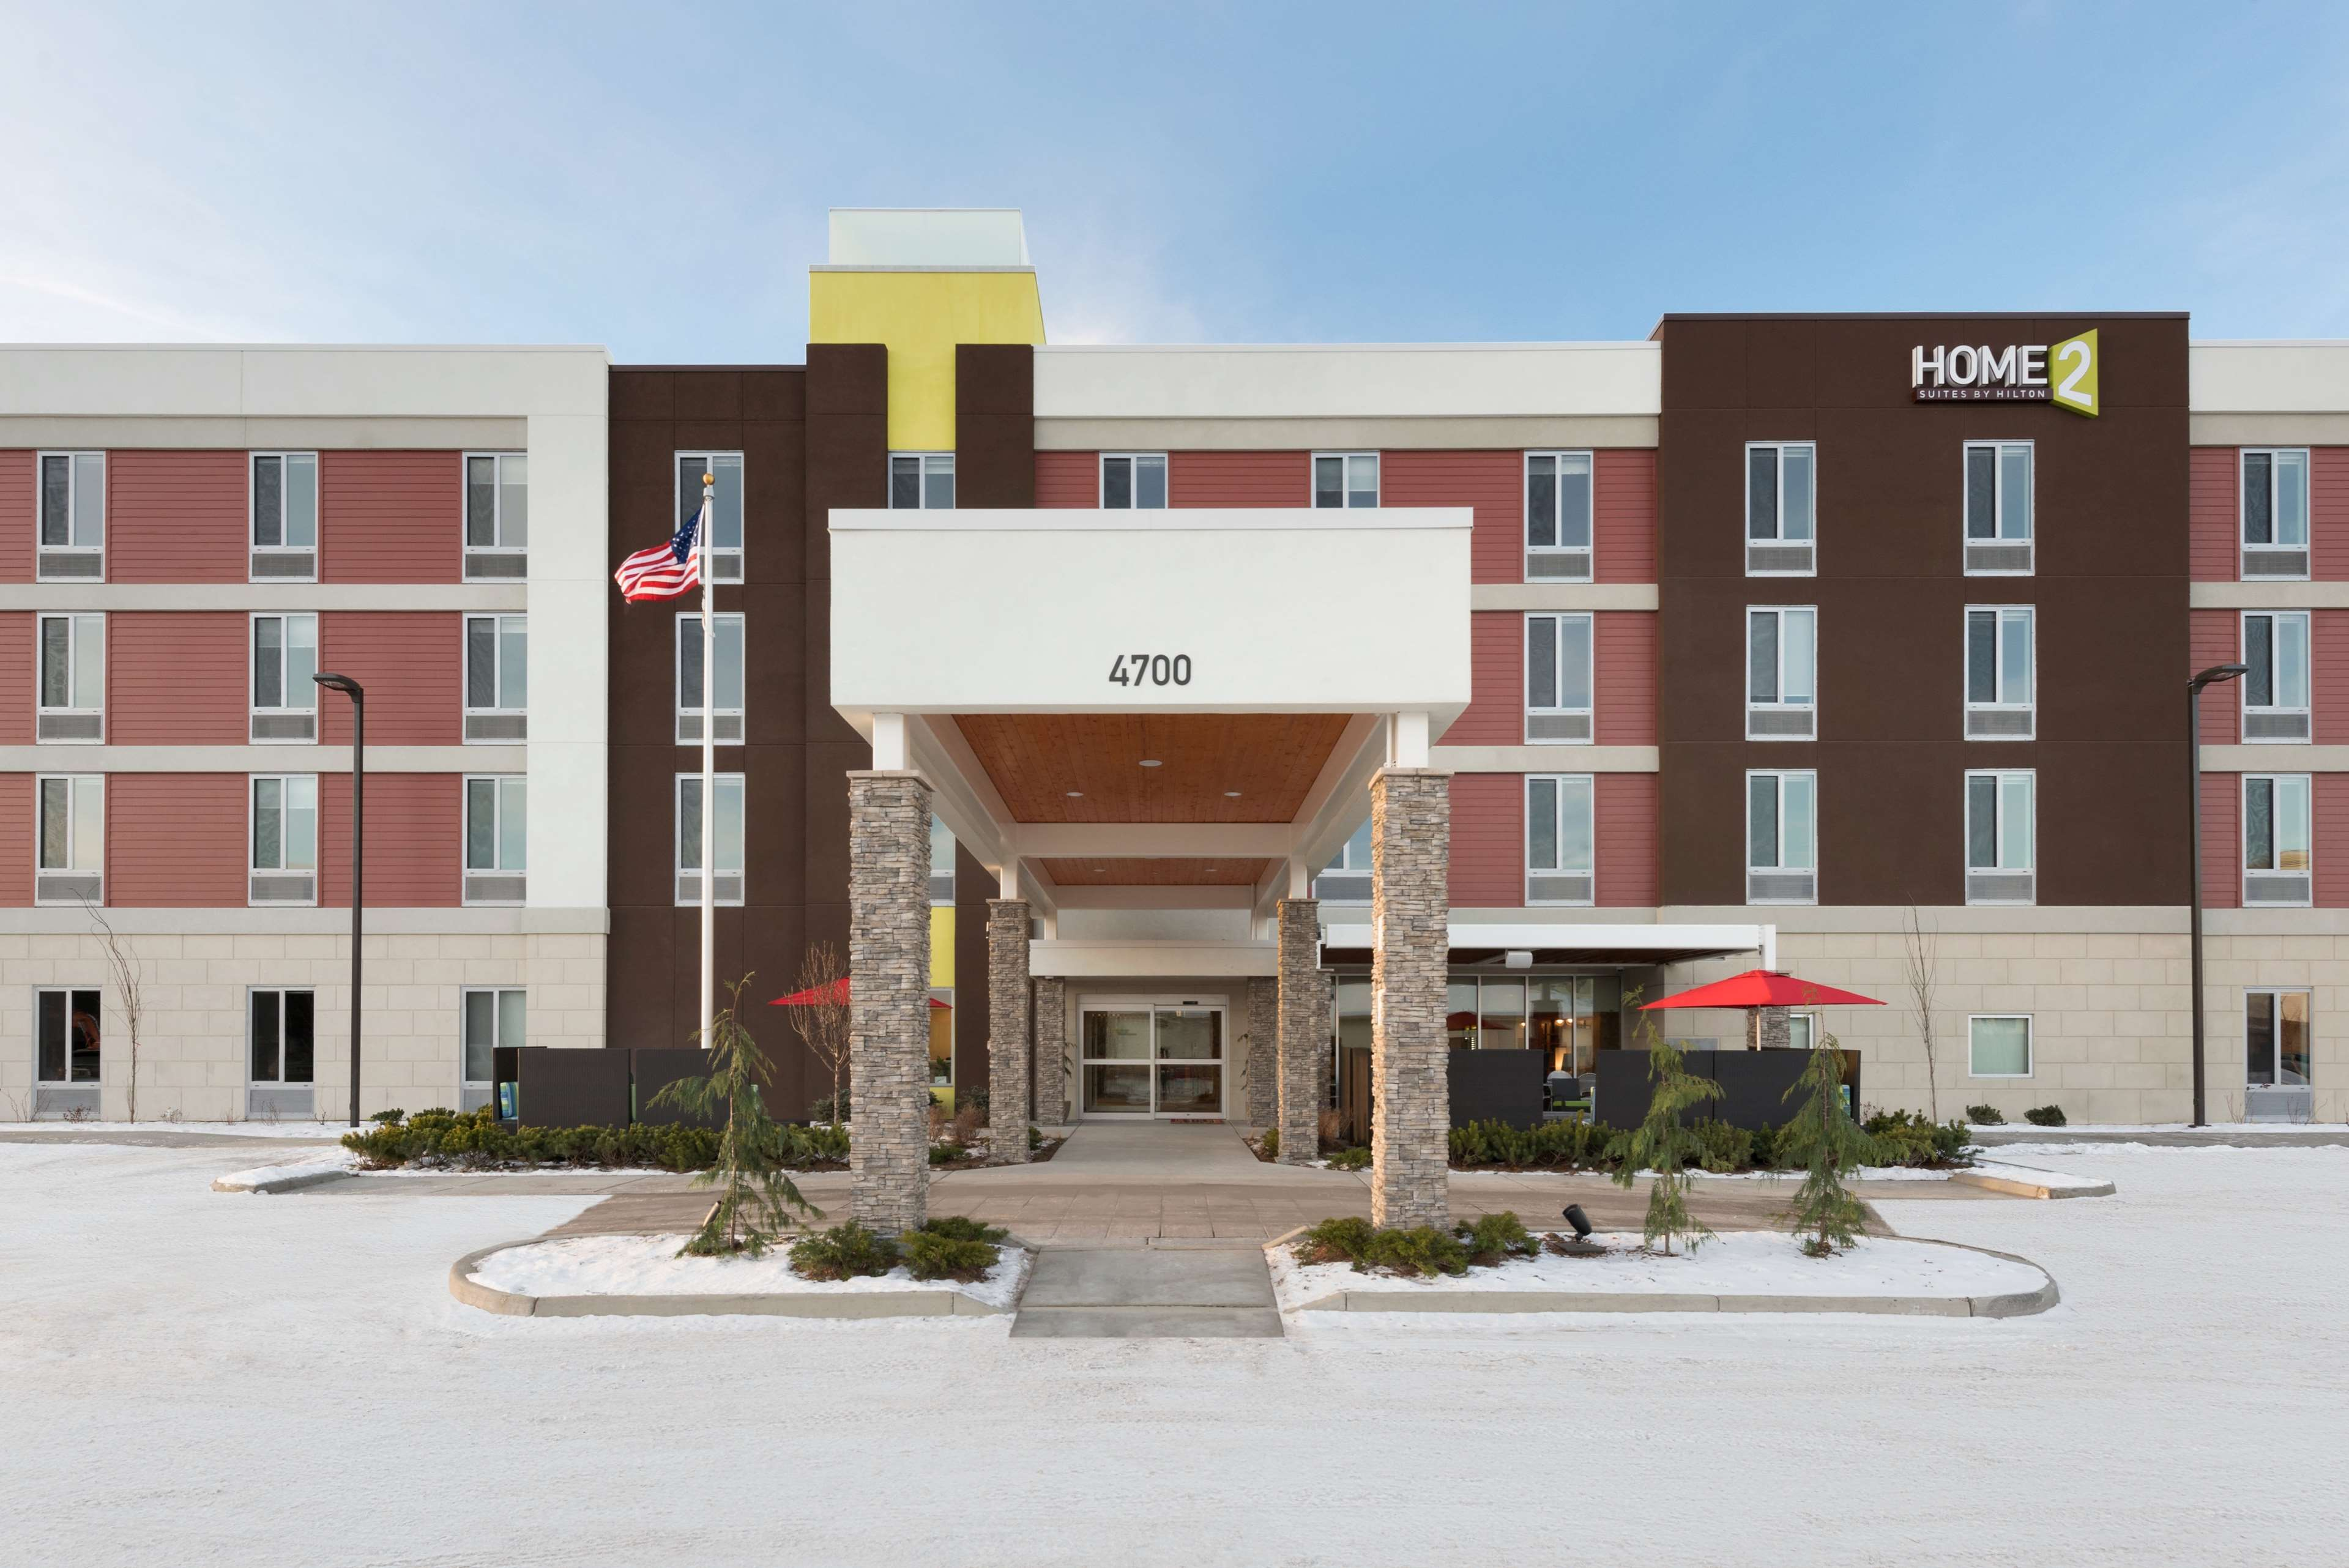 Home2 Suites by Hilton Anchorage/Midtown image 0